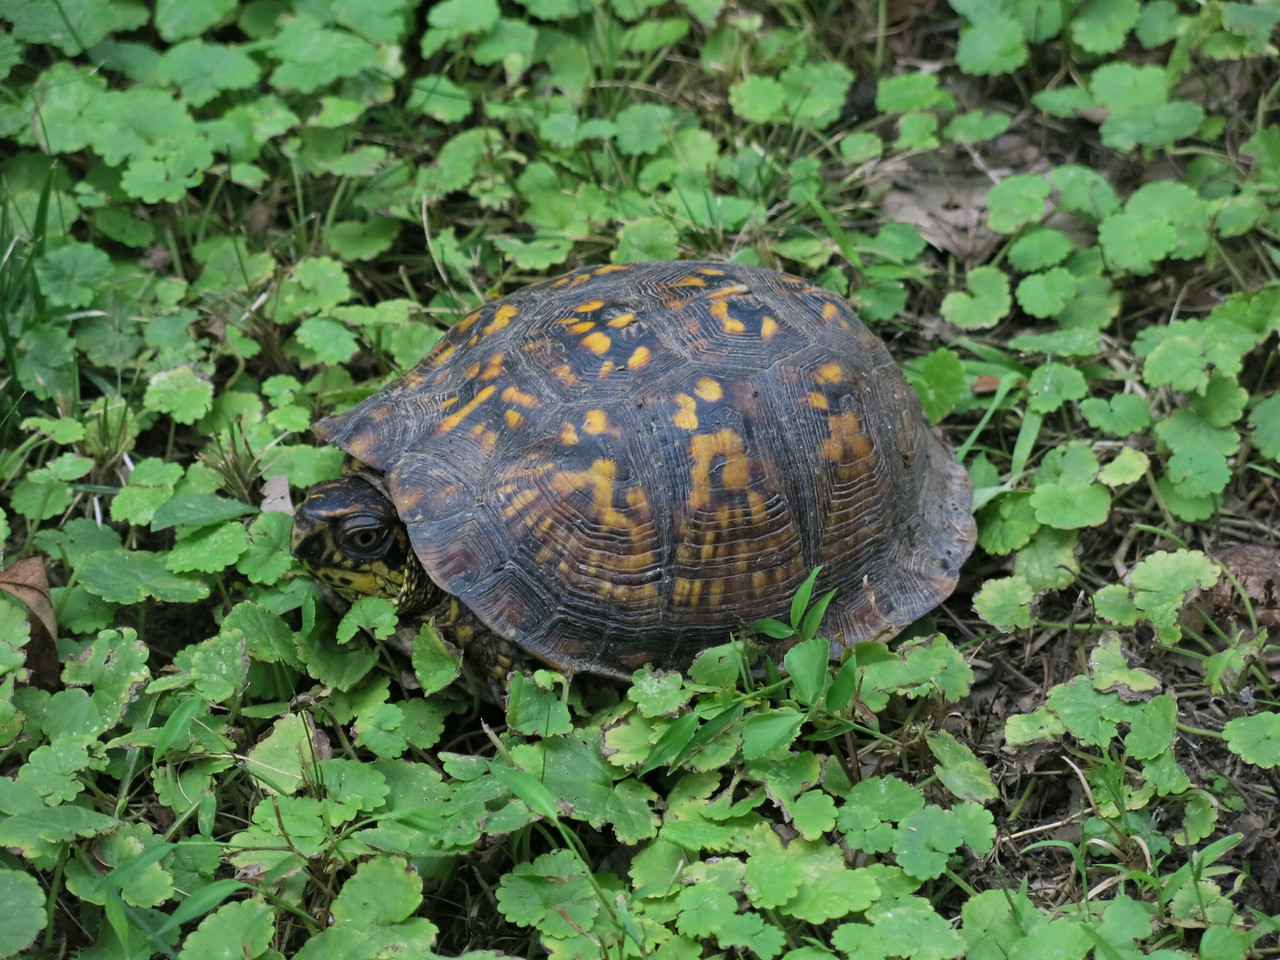 Intriguing tortoise along the trail